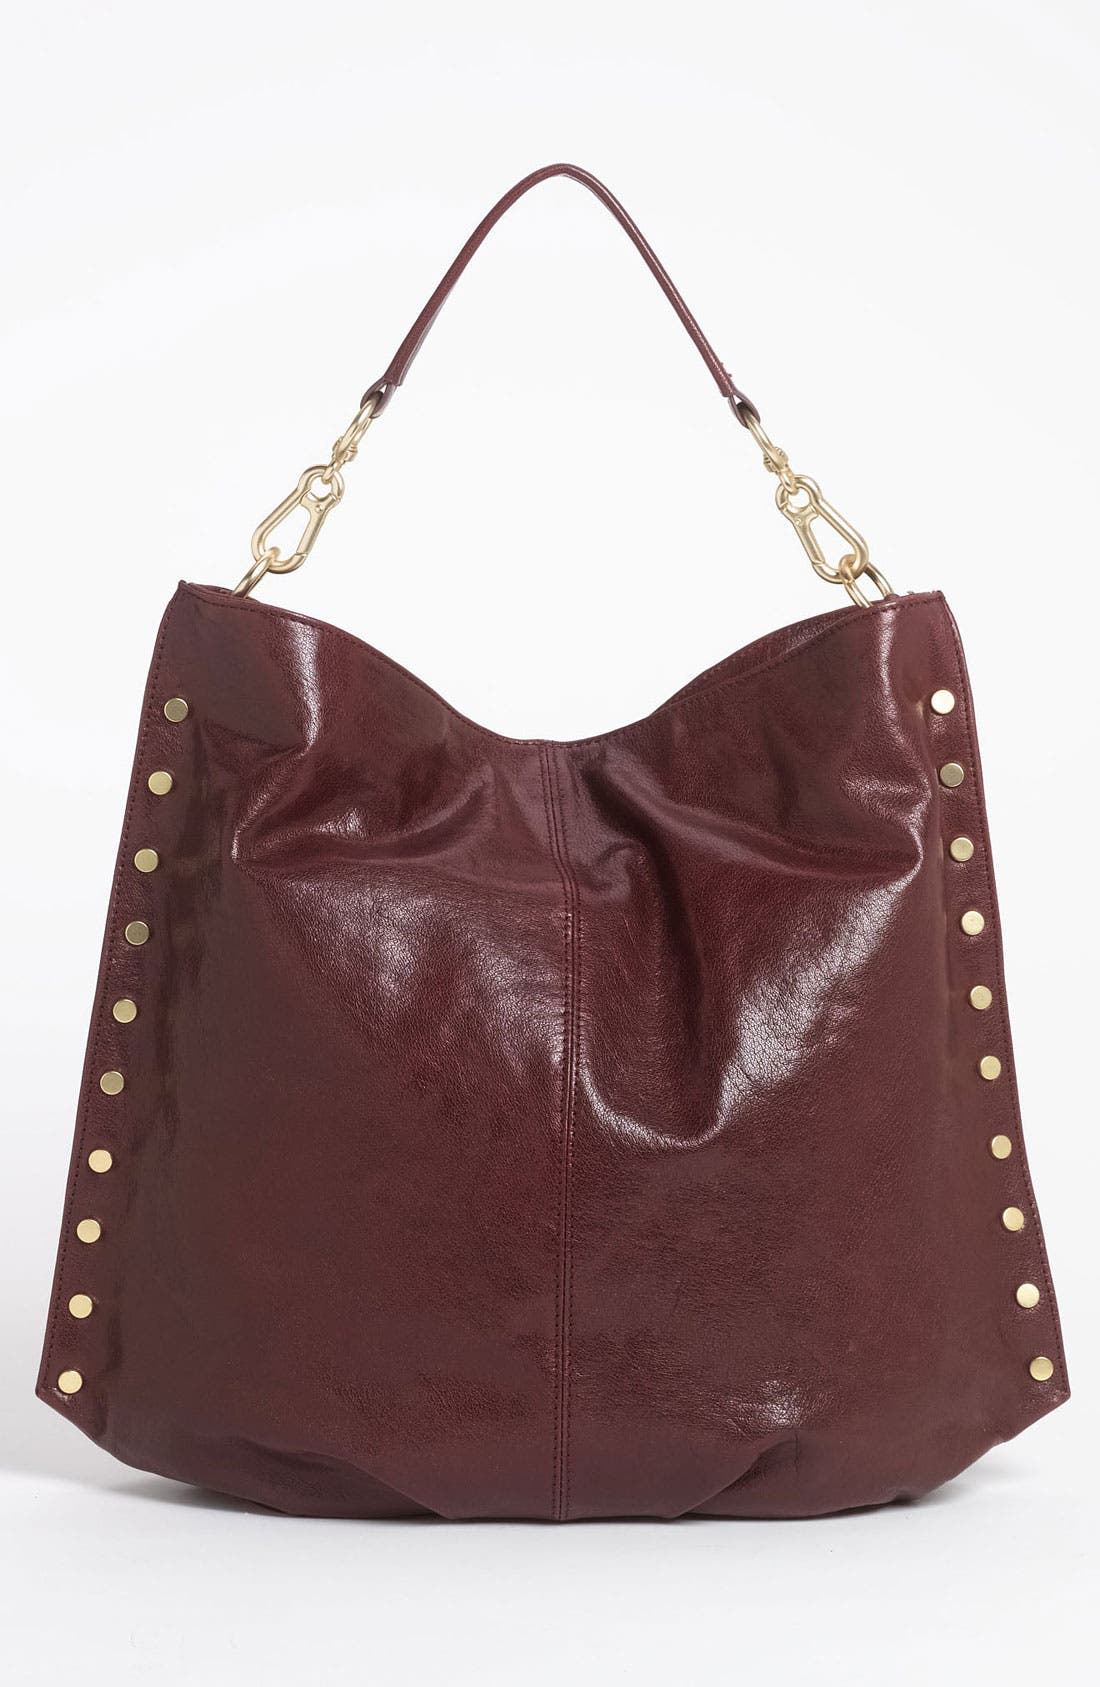 Alternate Image 1 Selected - Sloane & Alex 'Angie' Leather Hobo